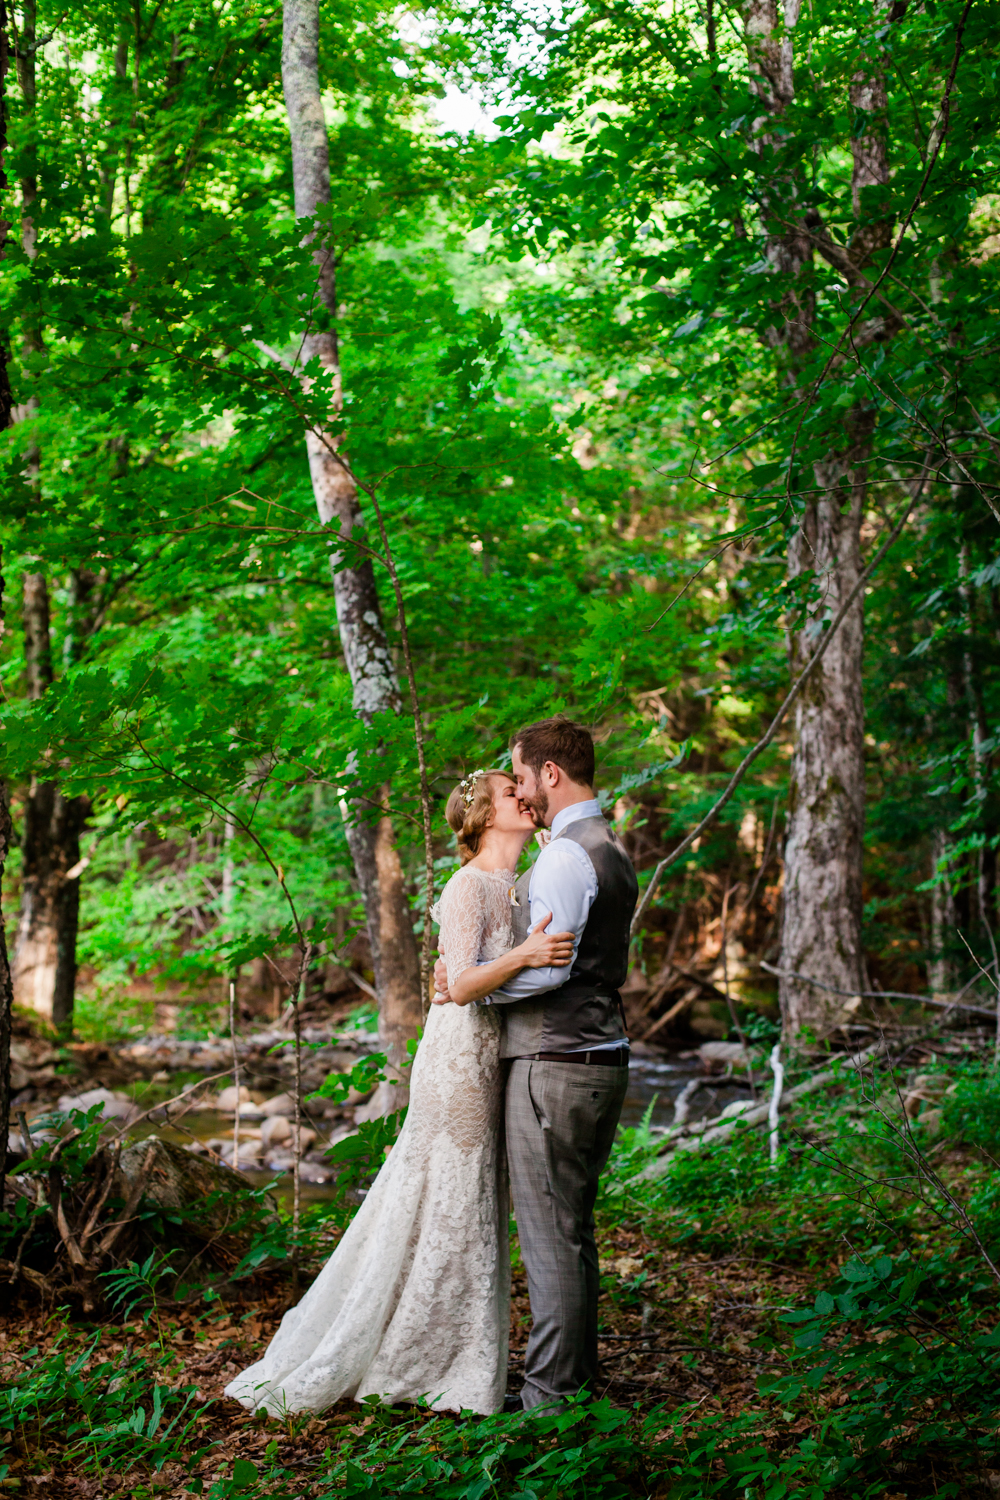 Bride and groom share a moment in the Adirondacks